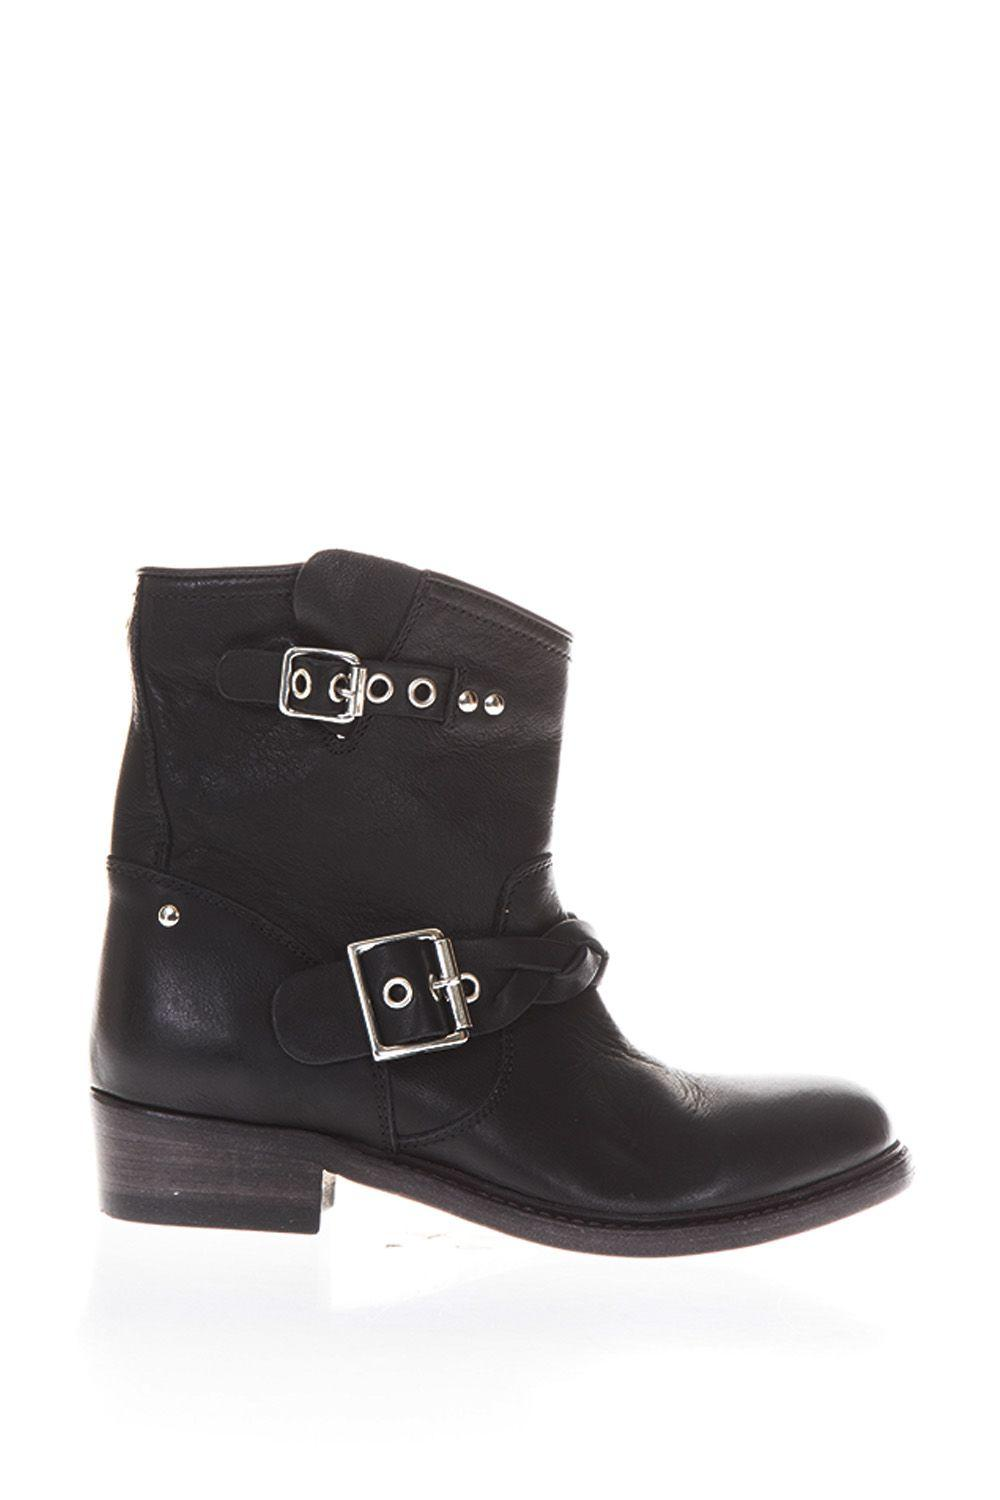 Golden Goose Buckle Leather Biker Boots In Black